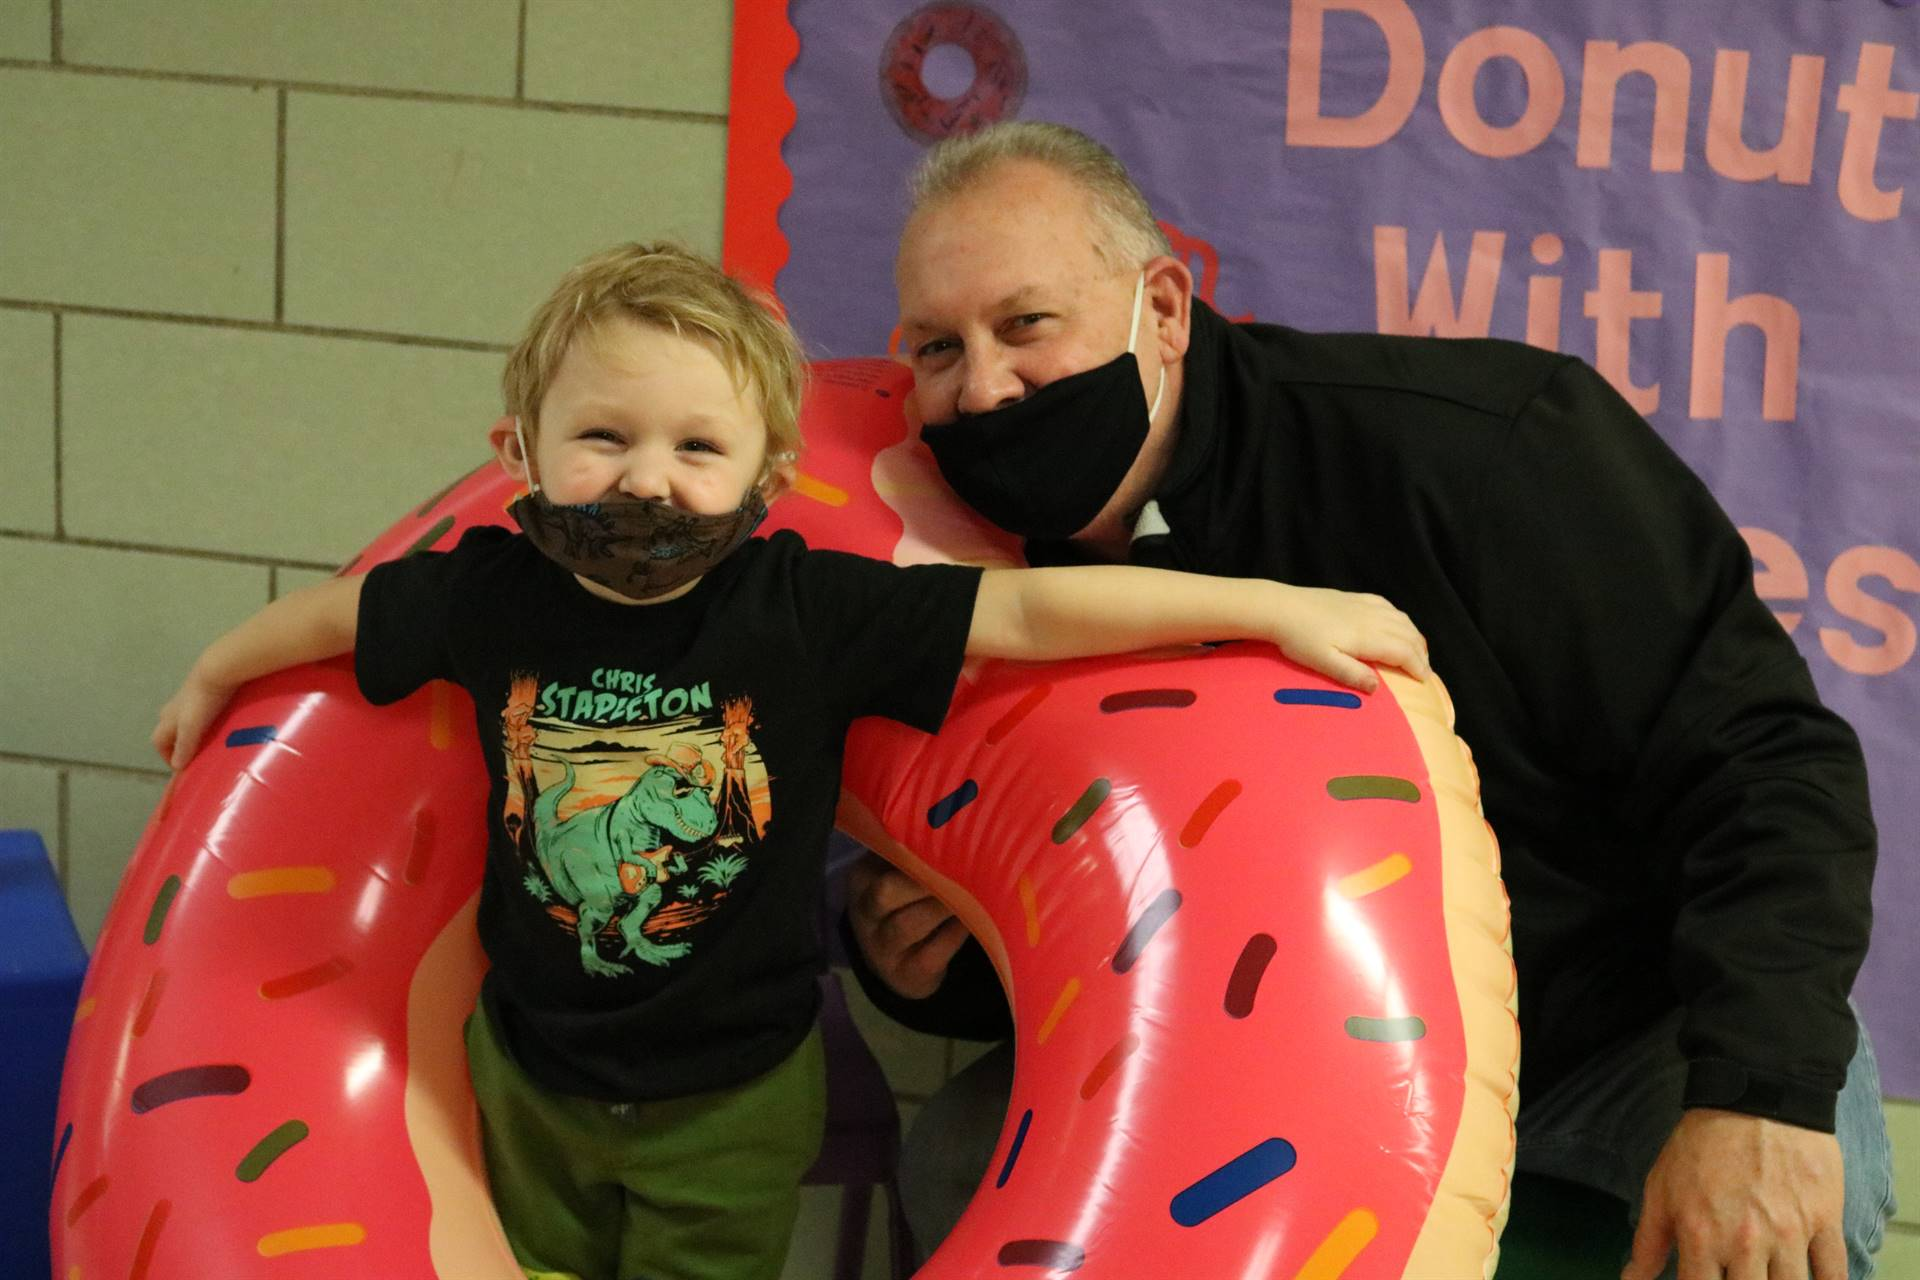 dad and boy in donut inflatable